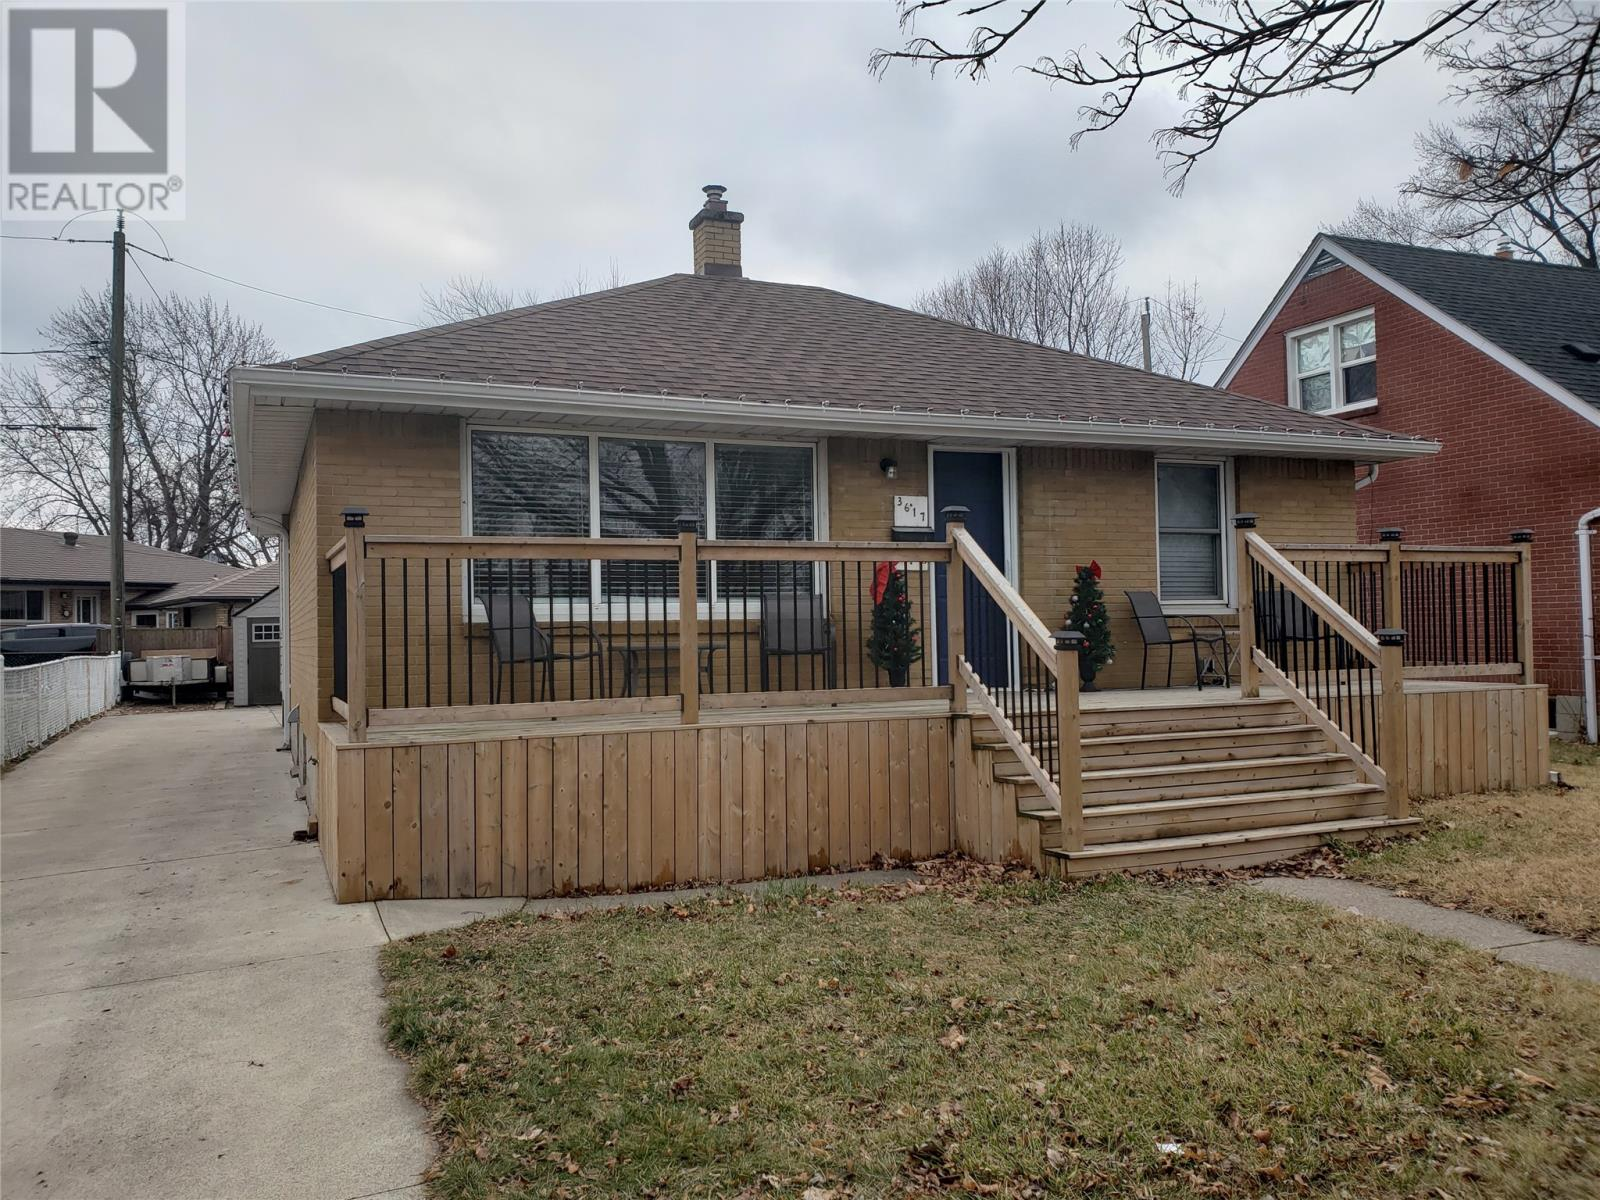 Removed: 3617 Tecumseh Road West, Windsor, ON - Removed on 2020-01-23 04:39:19